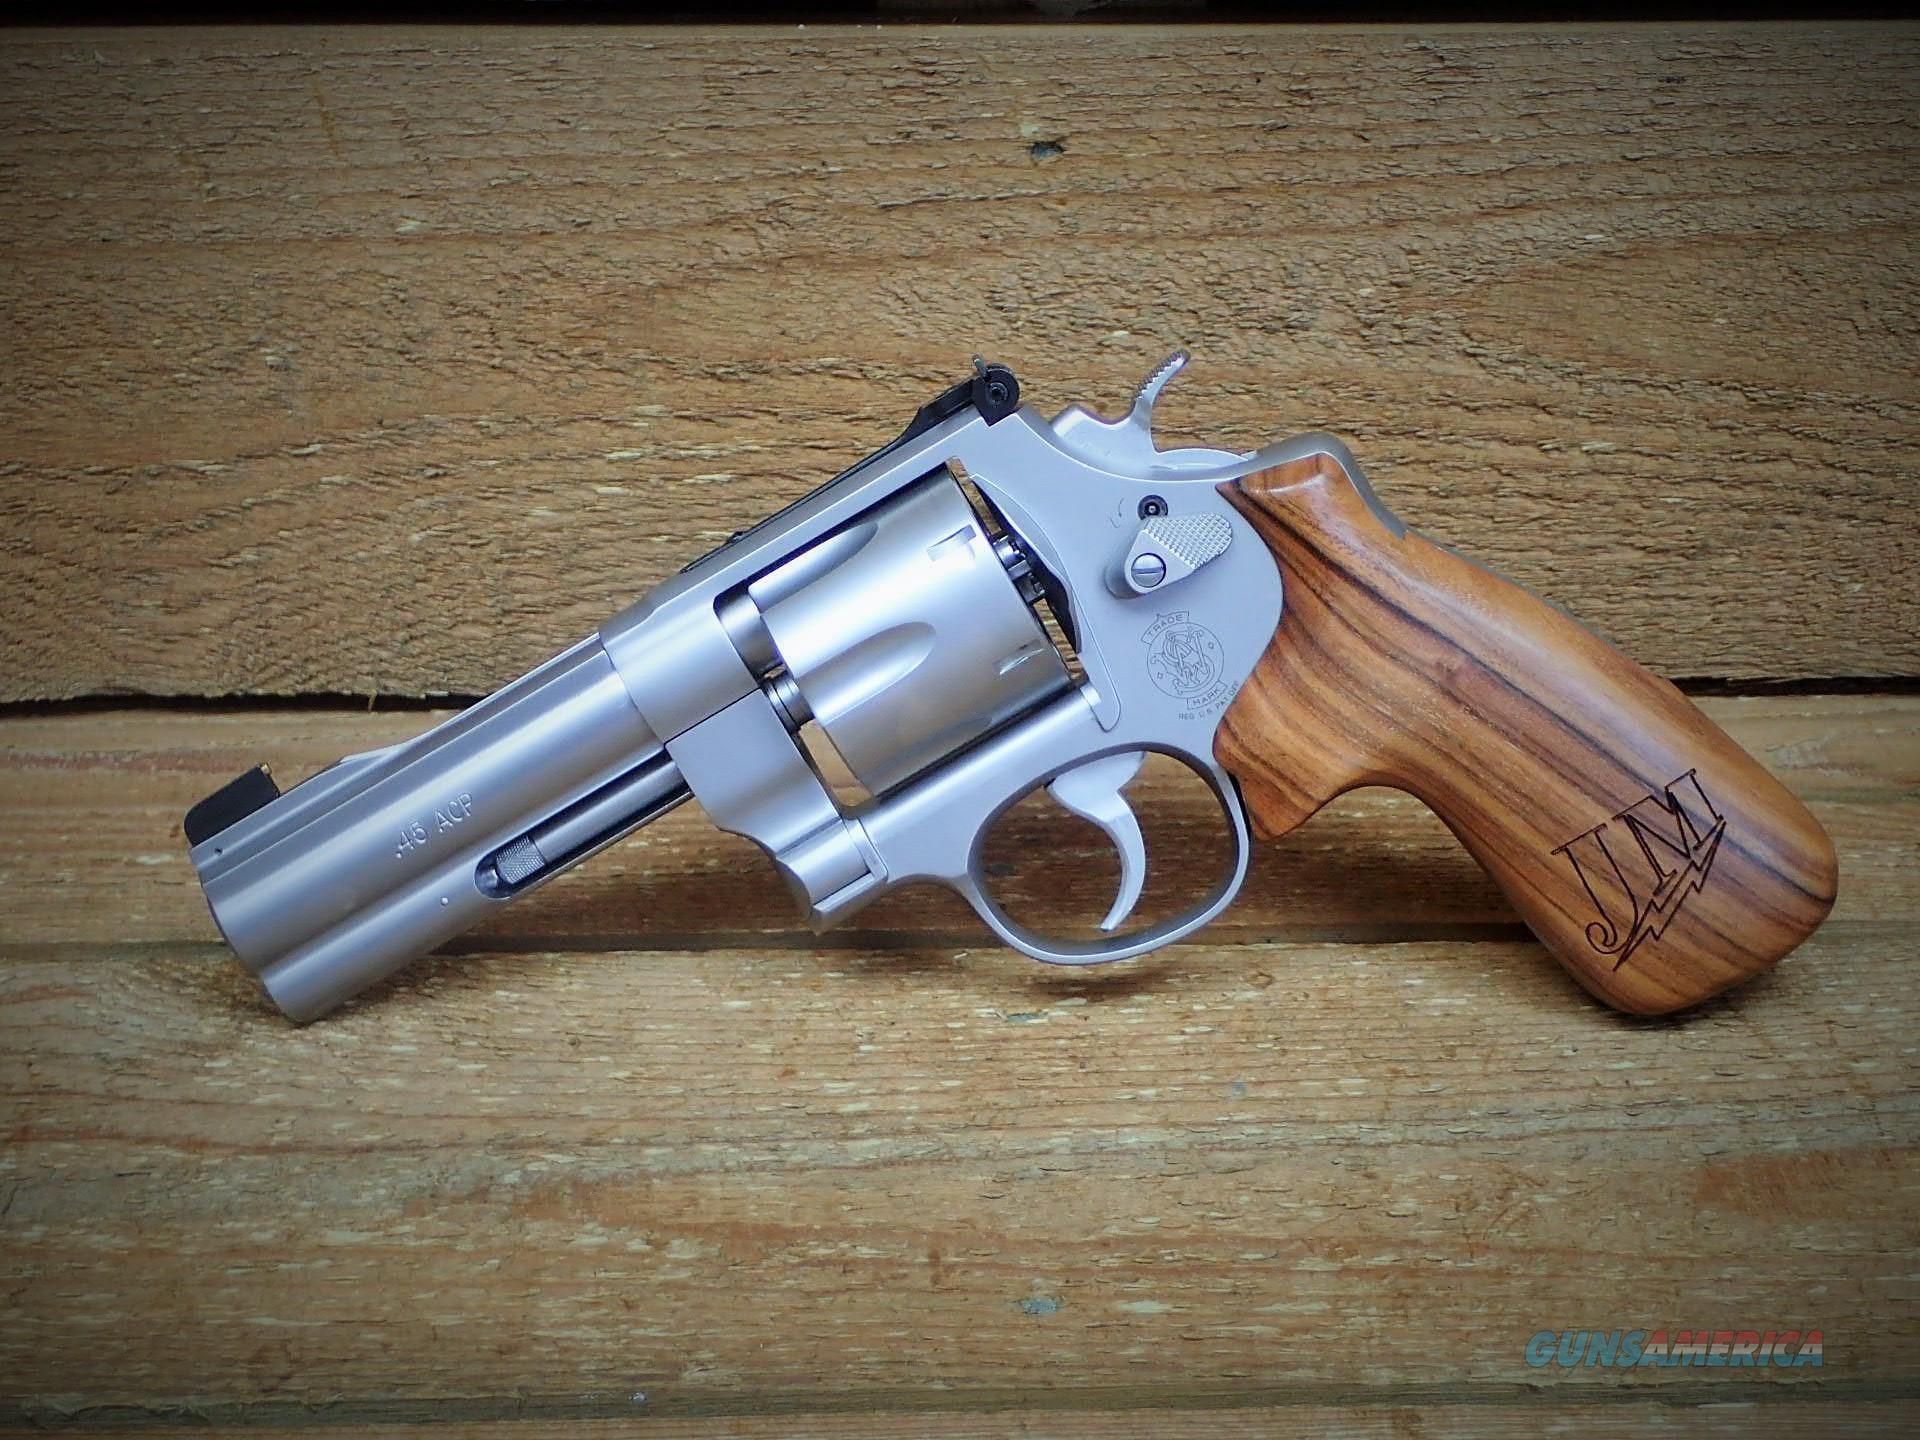 S&W 625 Jerry Miculek Champion 160936 /EASY PAY $79 Monthly  Guns > Pistols > Smith & Wesson Revolvers > Full Frame Revolver